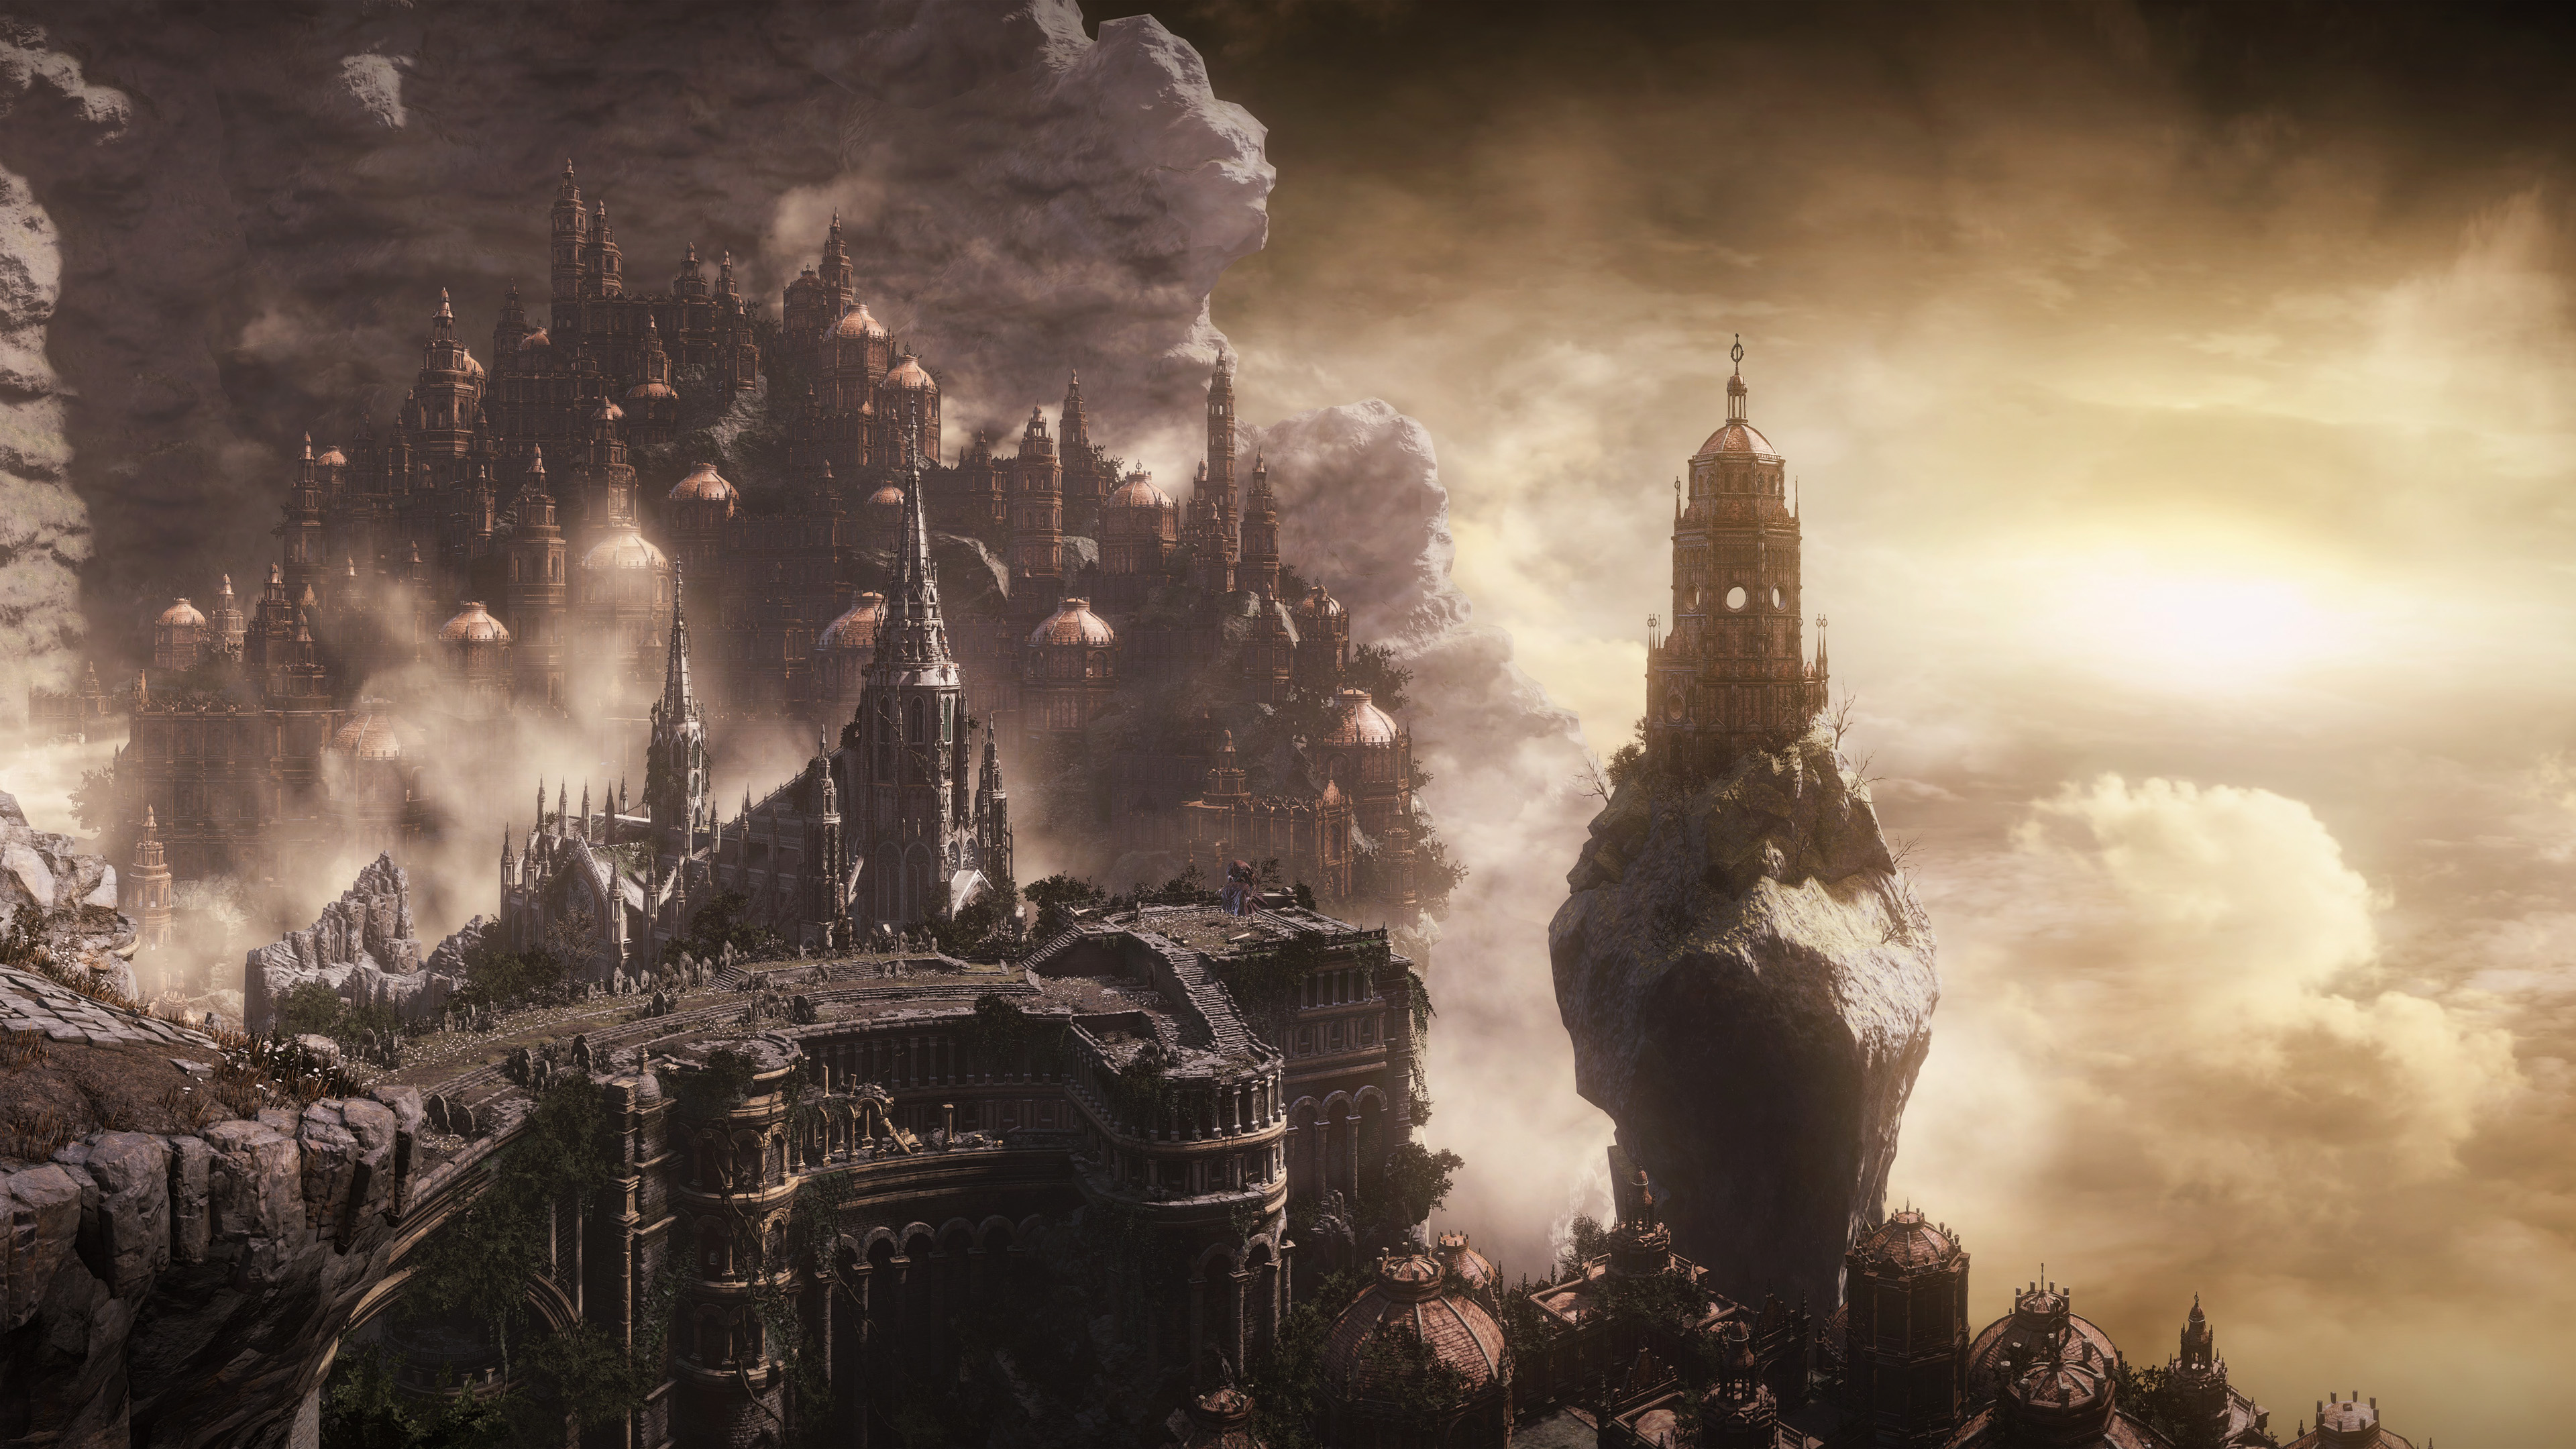 1920x1080 Dark Souls 3 City Fantasy Laptop Full HD 1080P